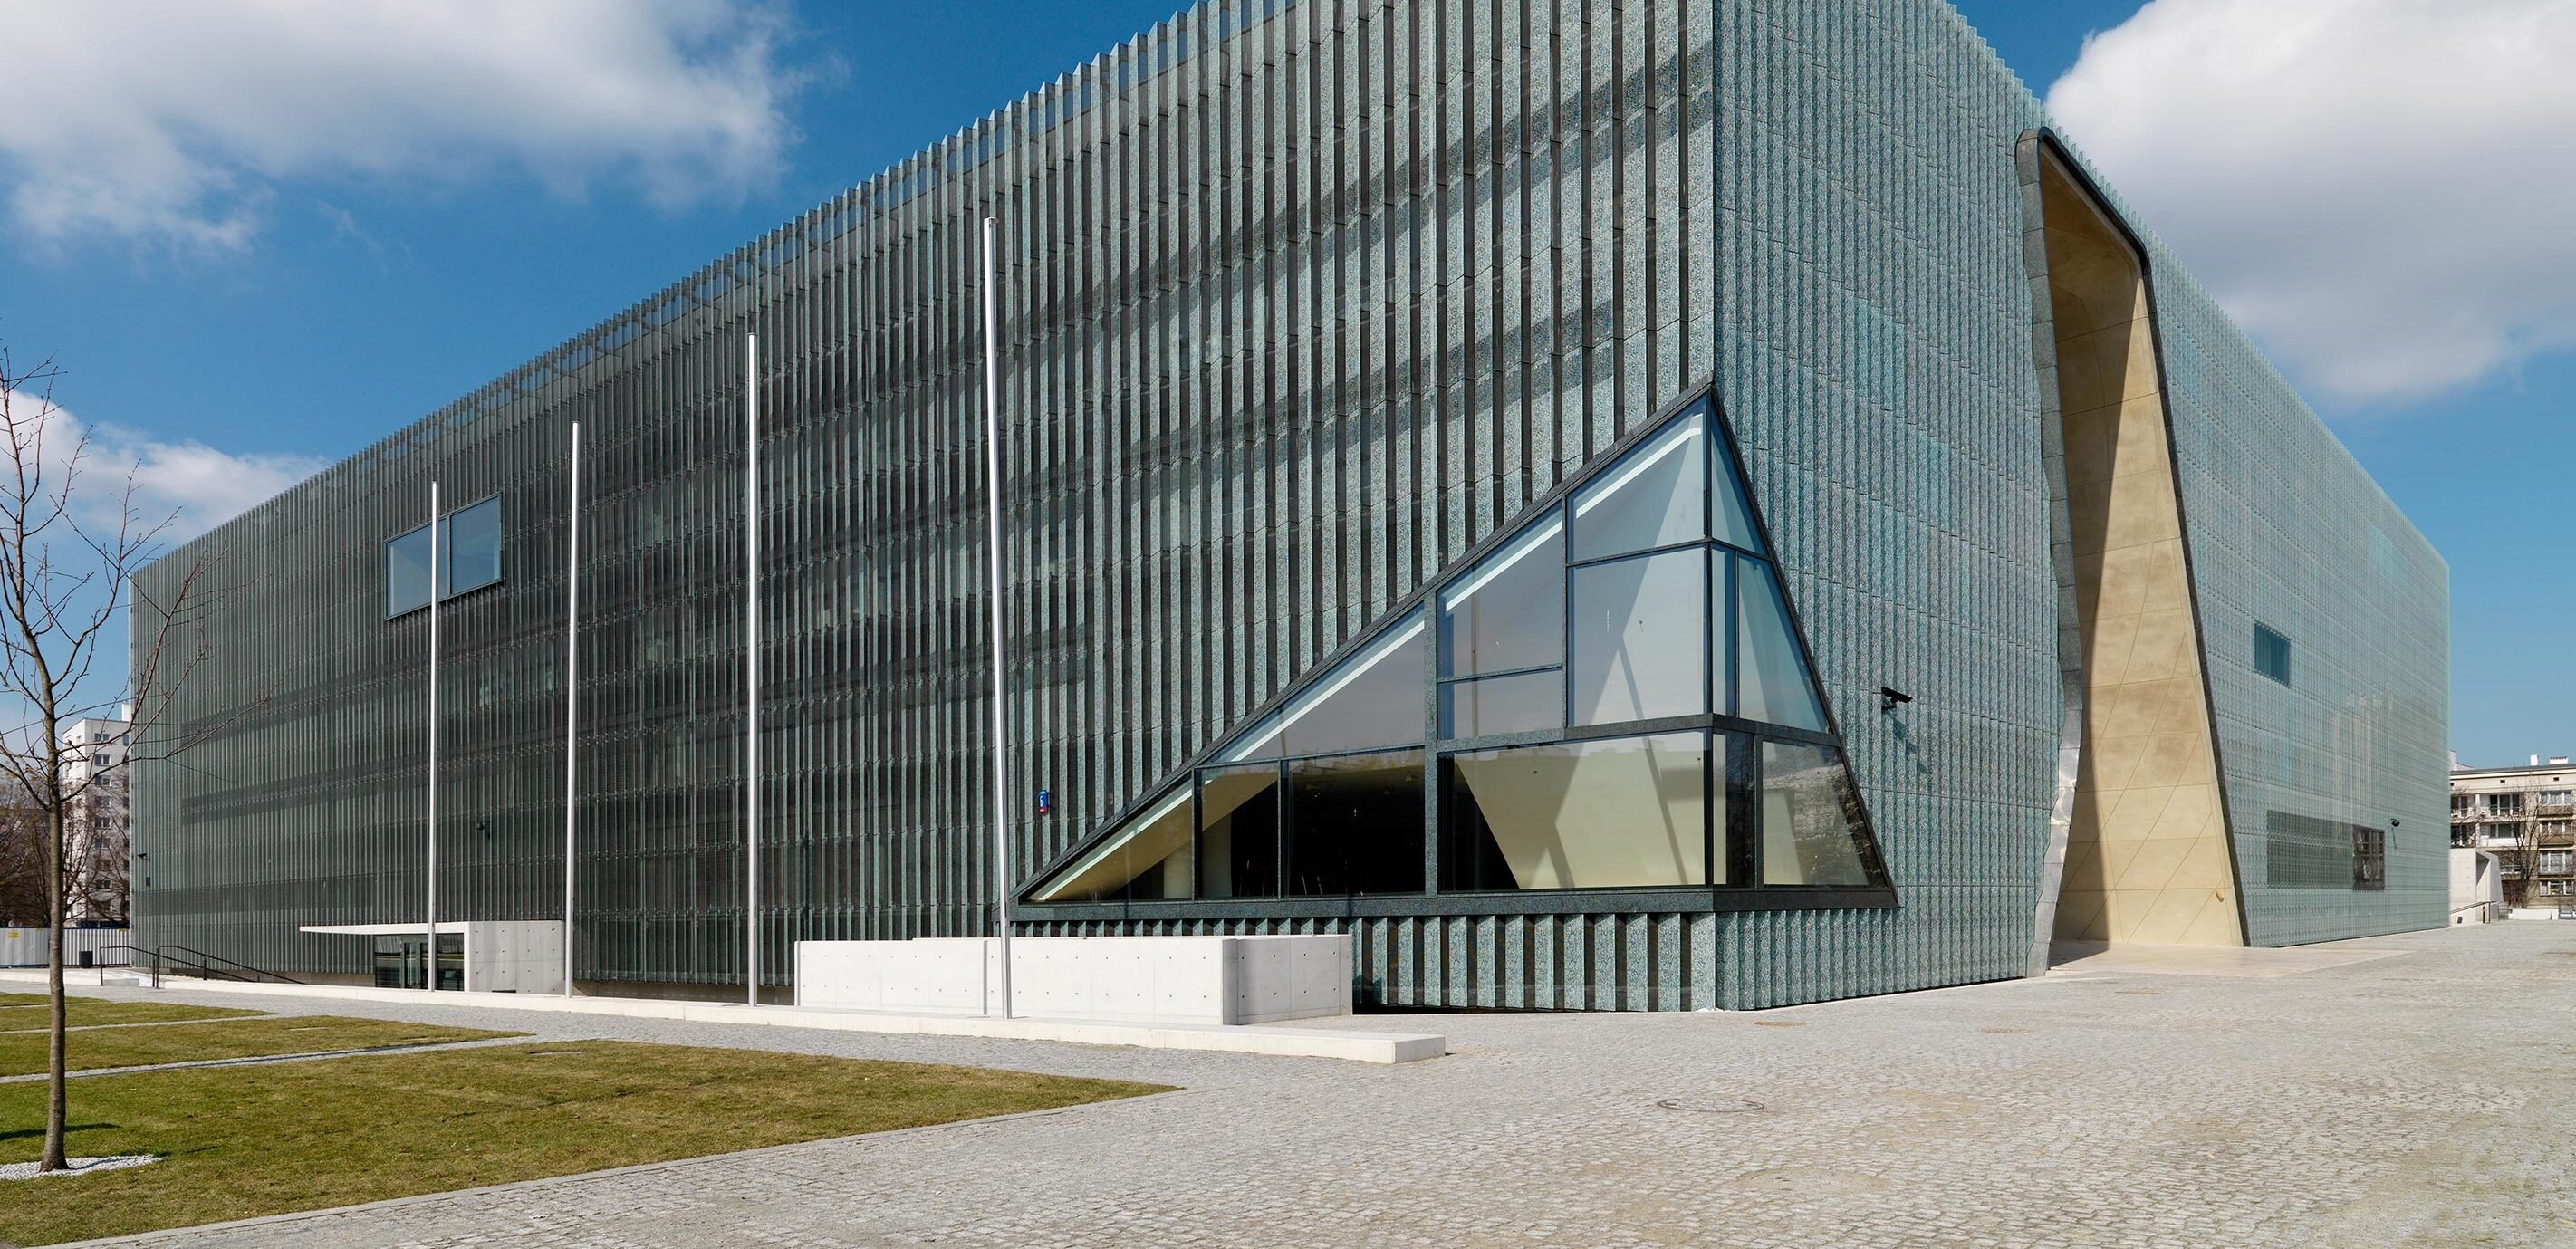 The Museum of the History of Polish Jews - guided tour, sightseeing Warsaw